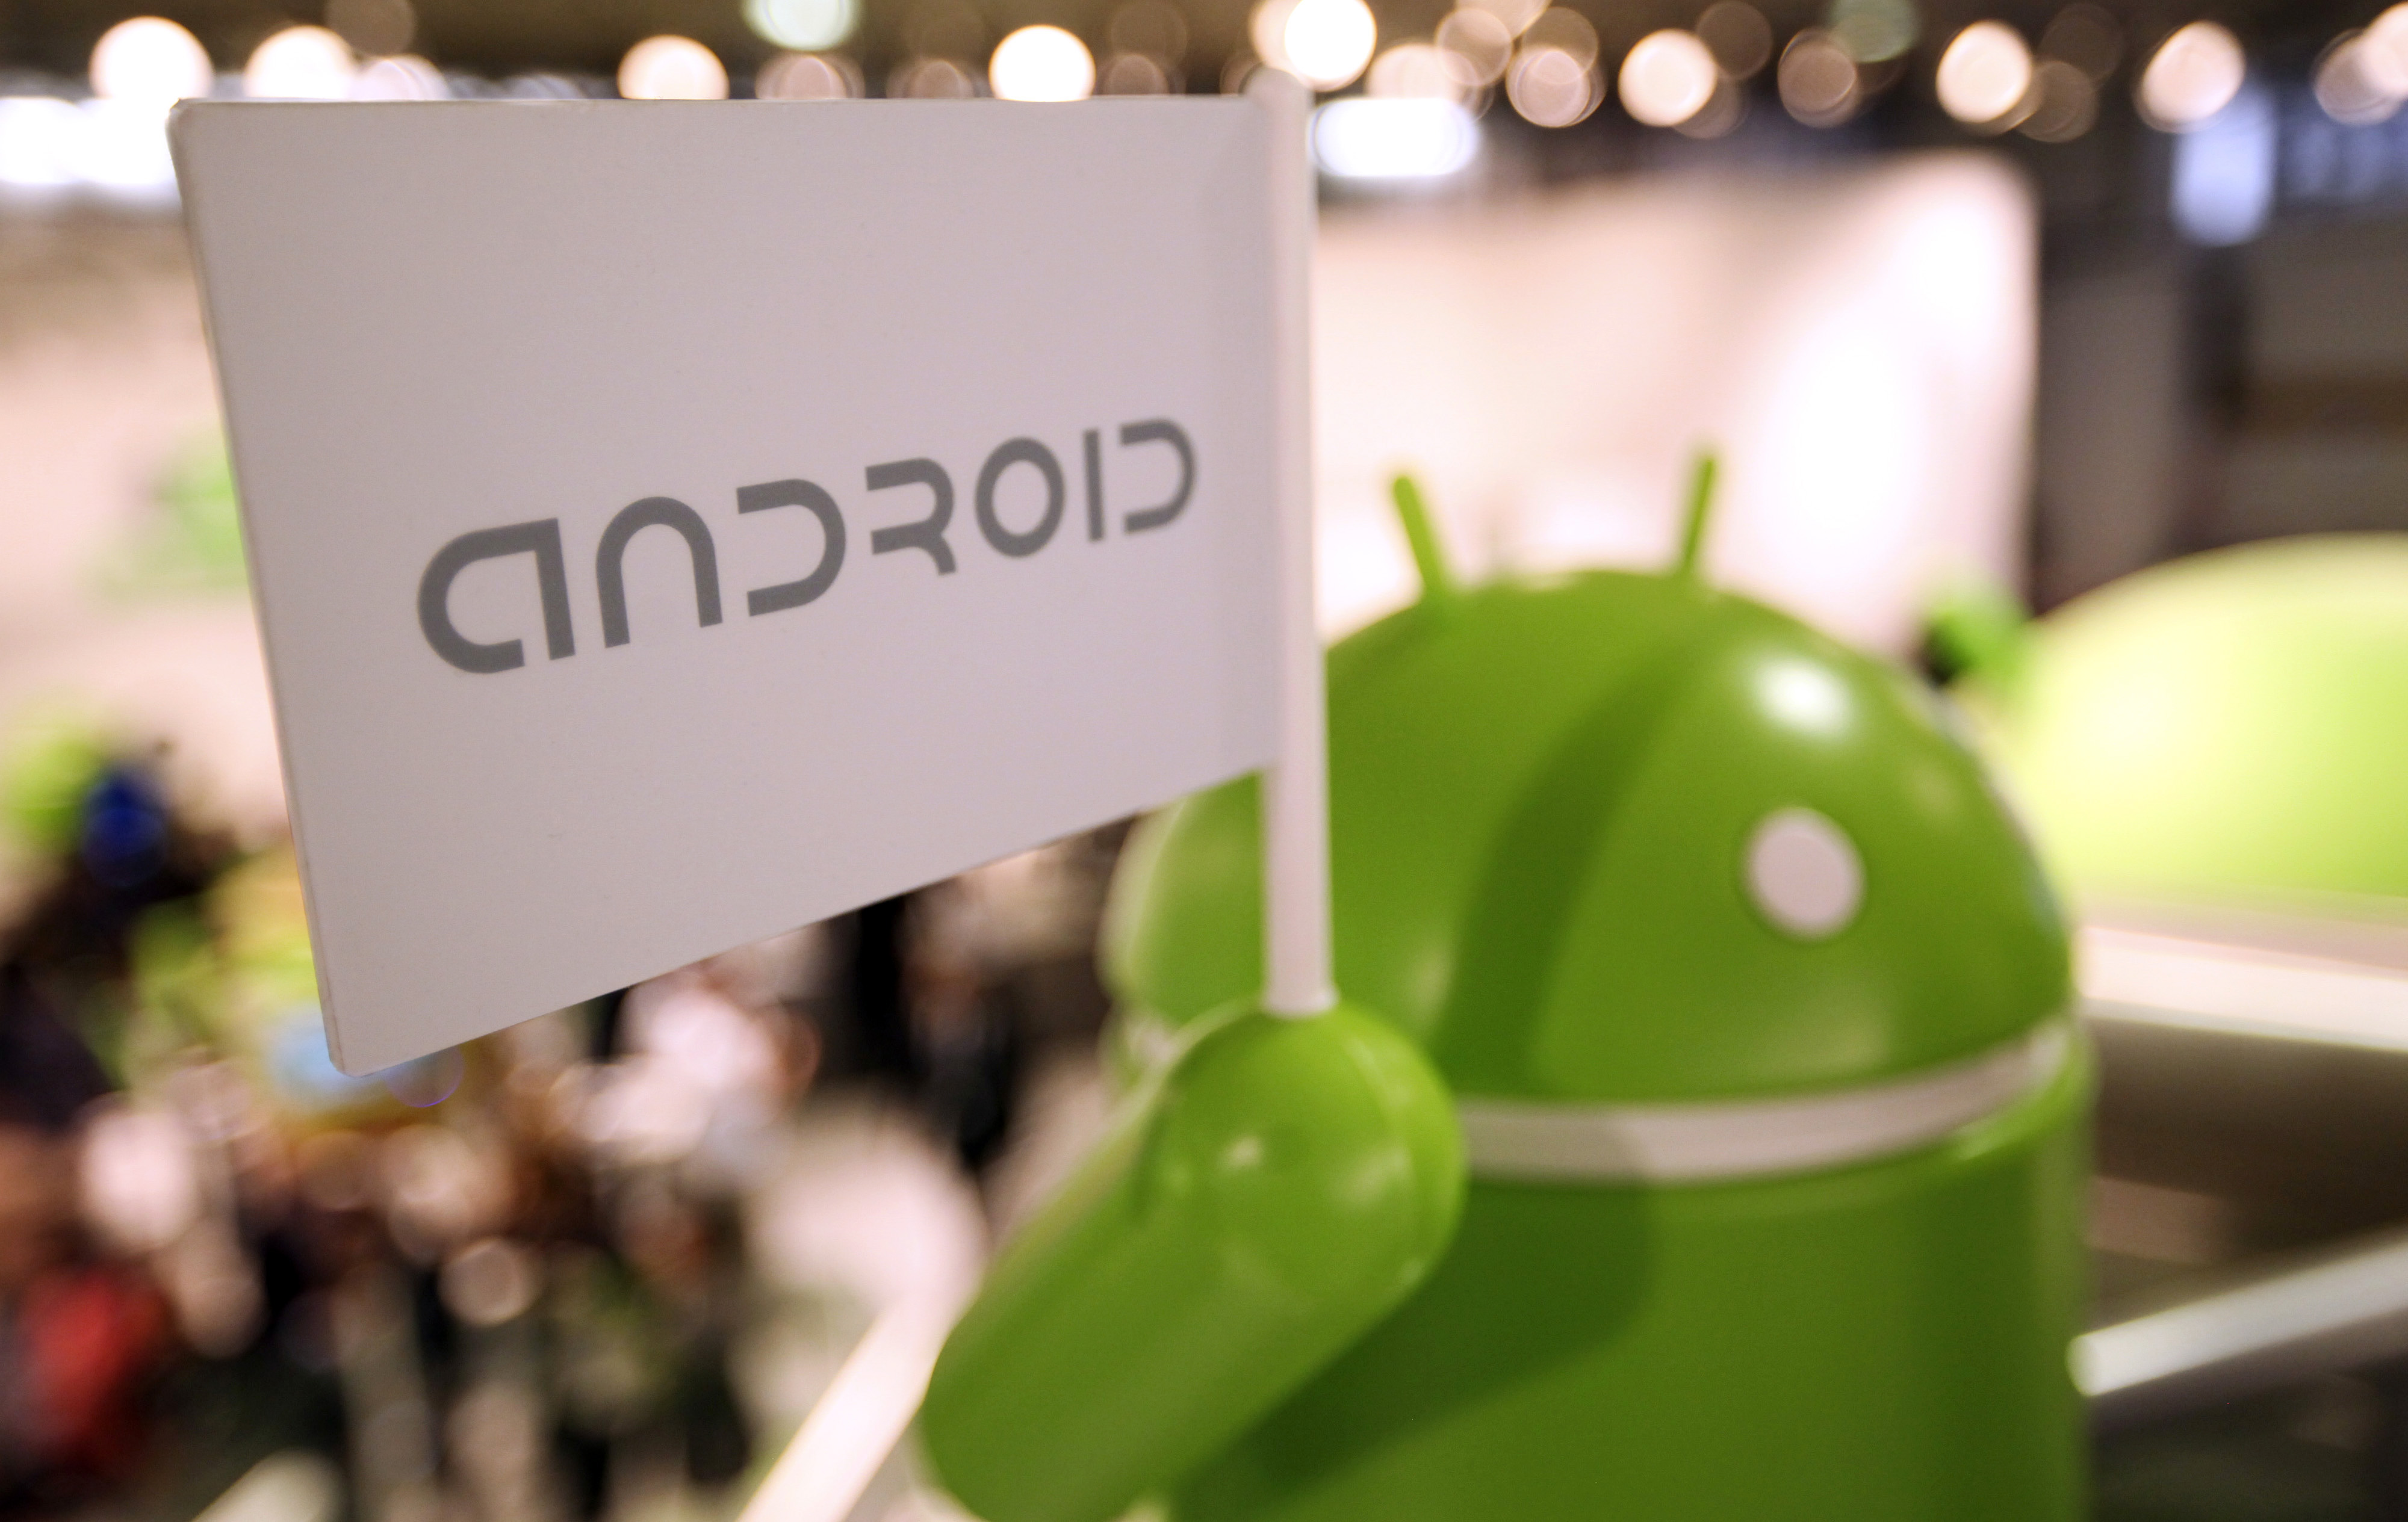 A model of the Android operating system logo at the Mobile World Congress in Barcelona, Spain, on Feb. 27, 2012.